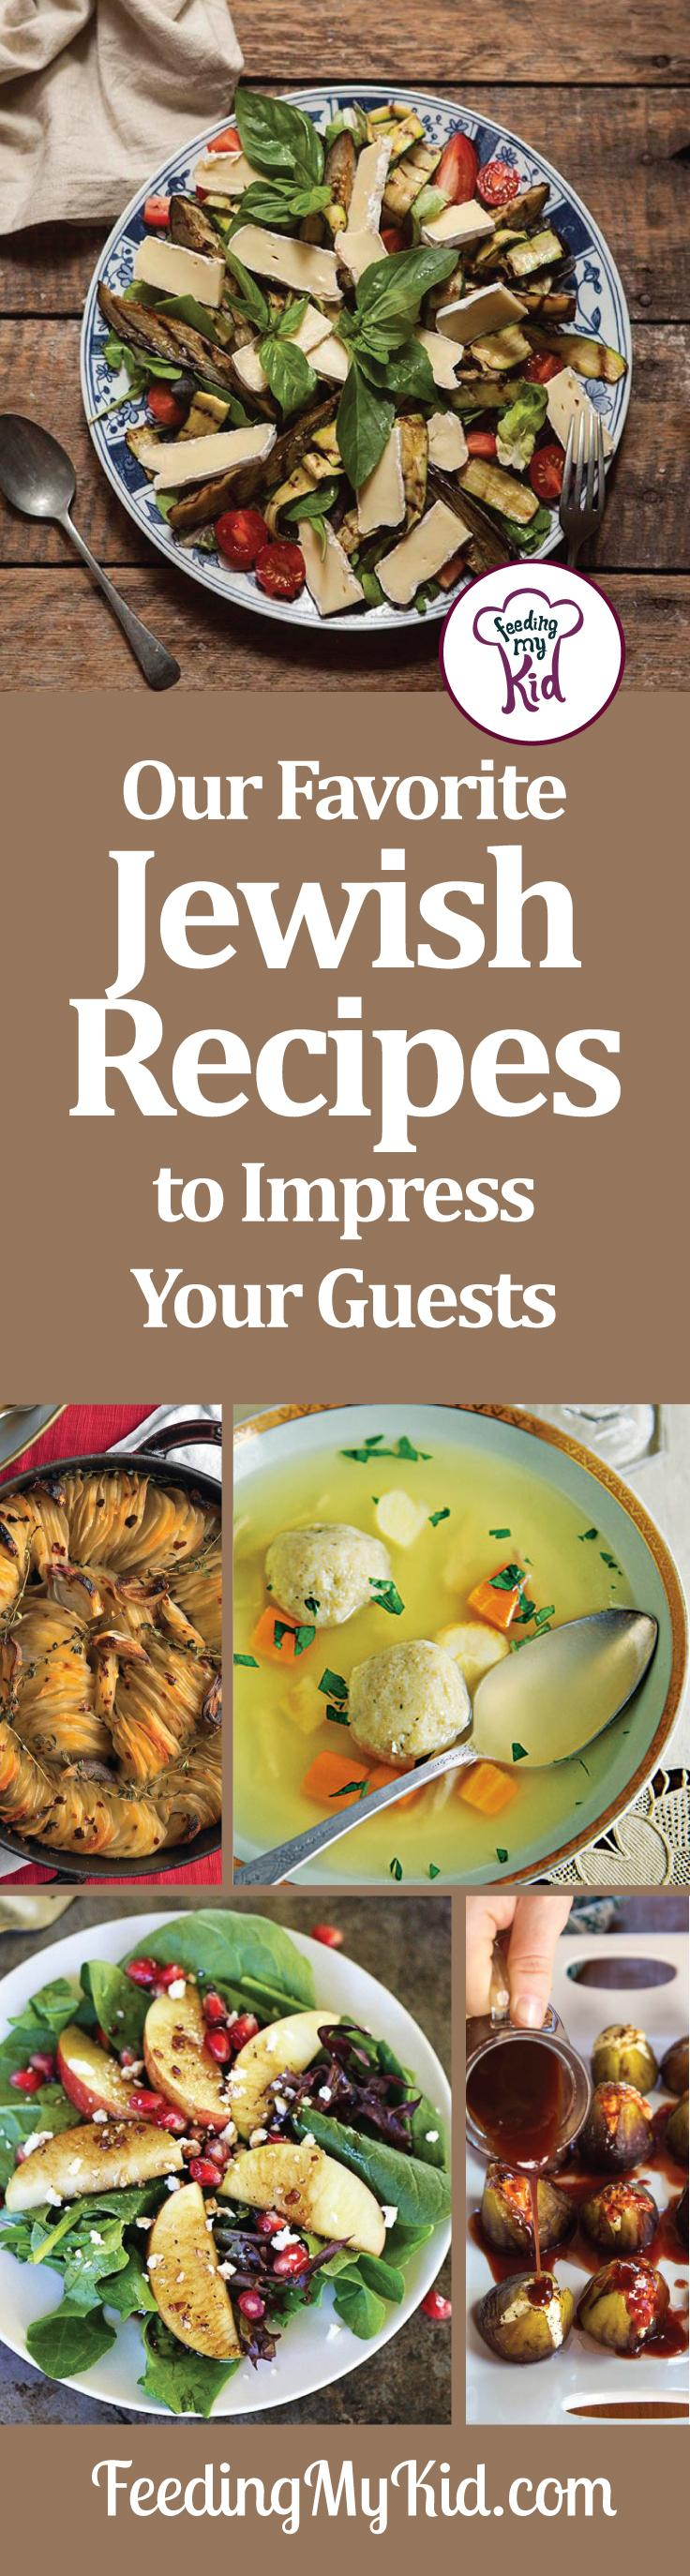 jewish recipes impress your guests with these great recipes